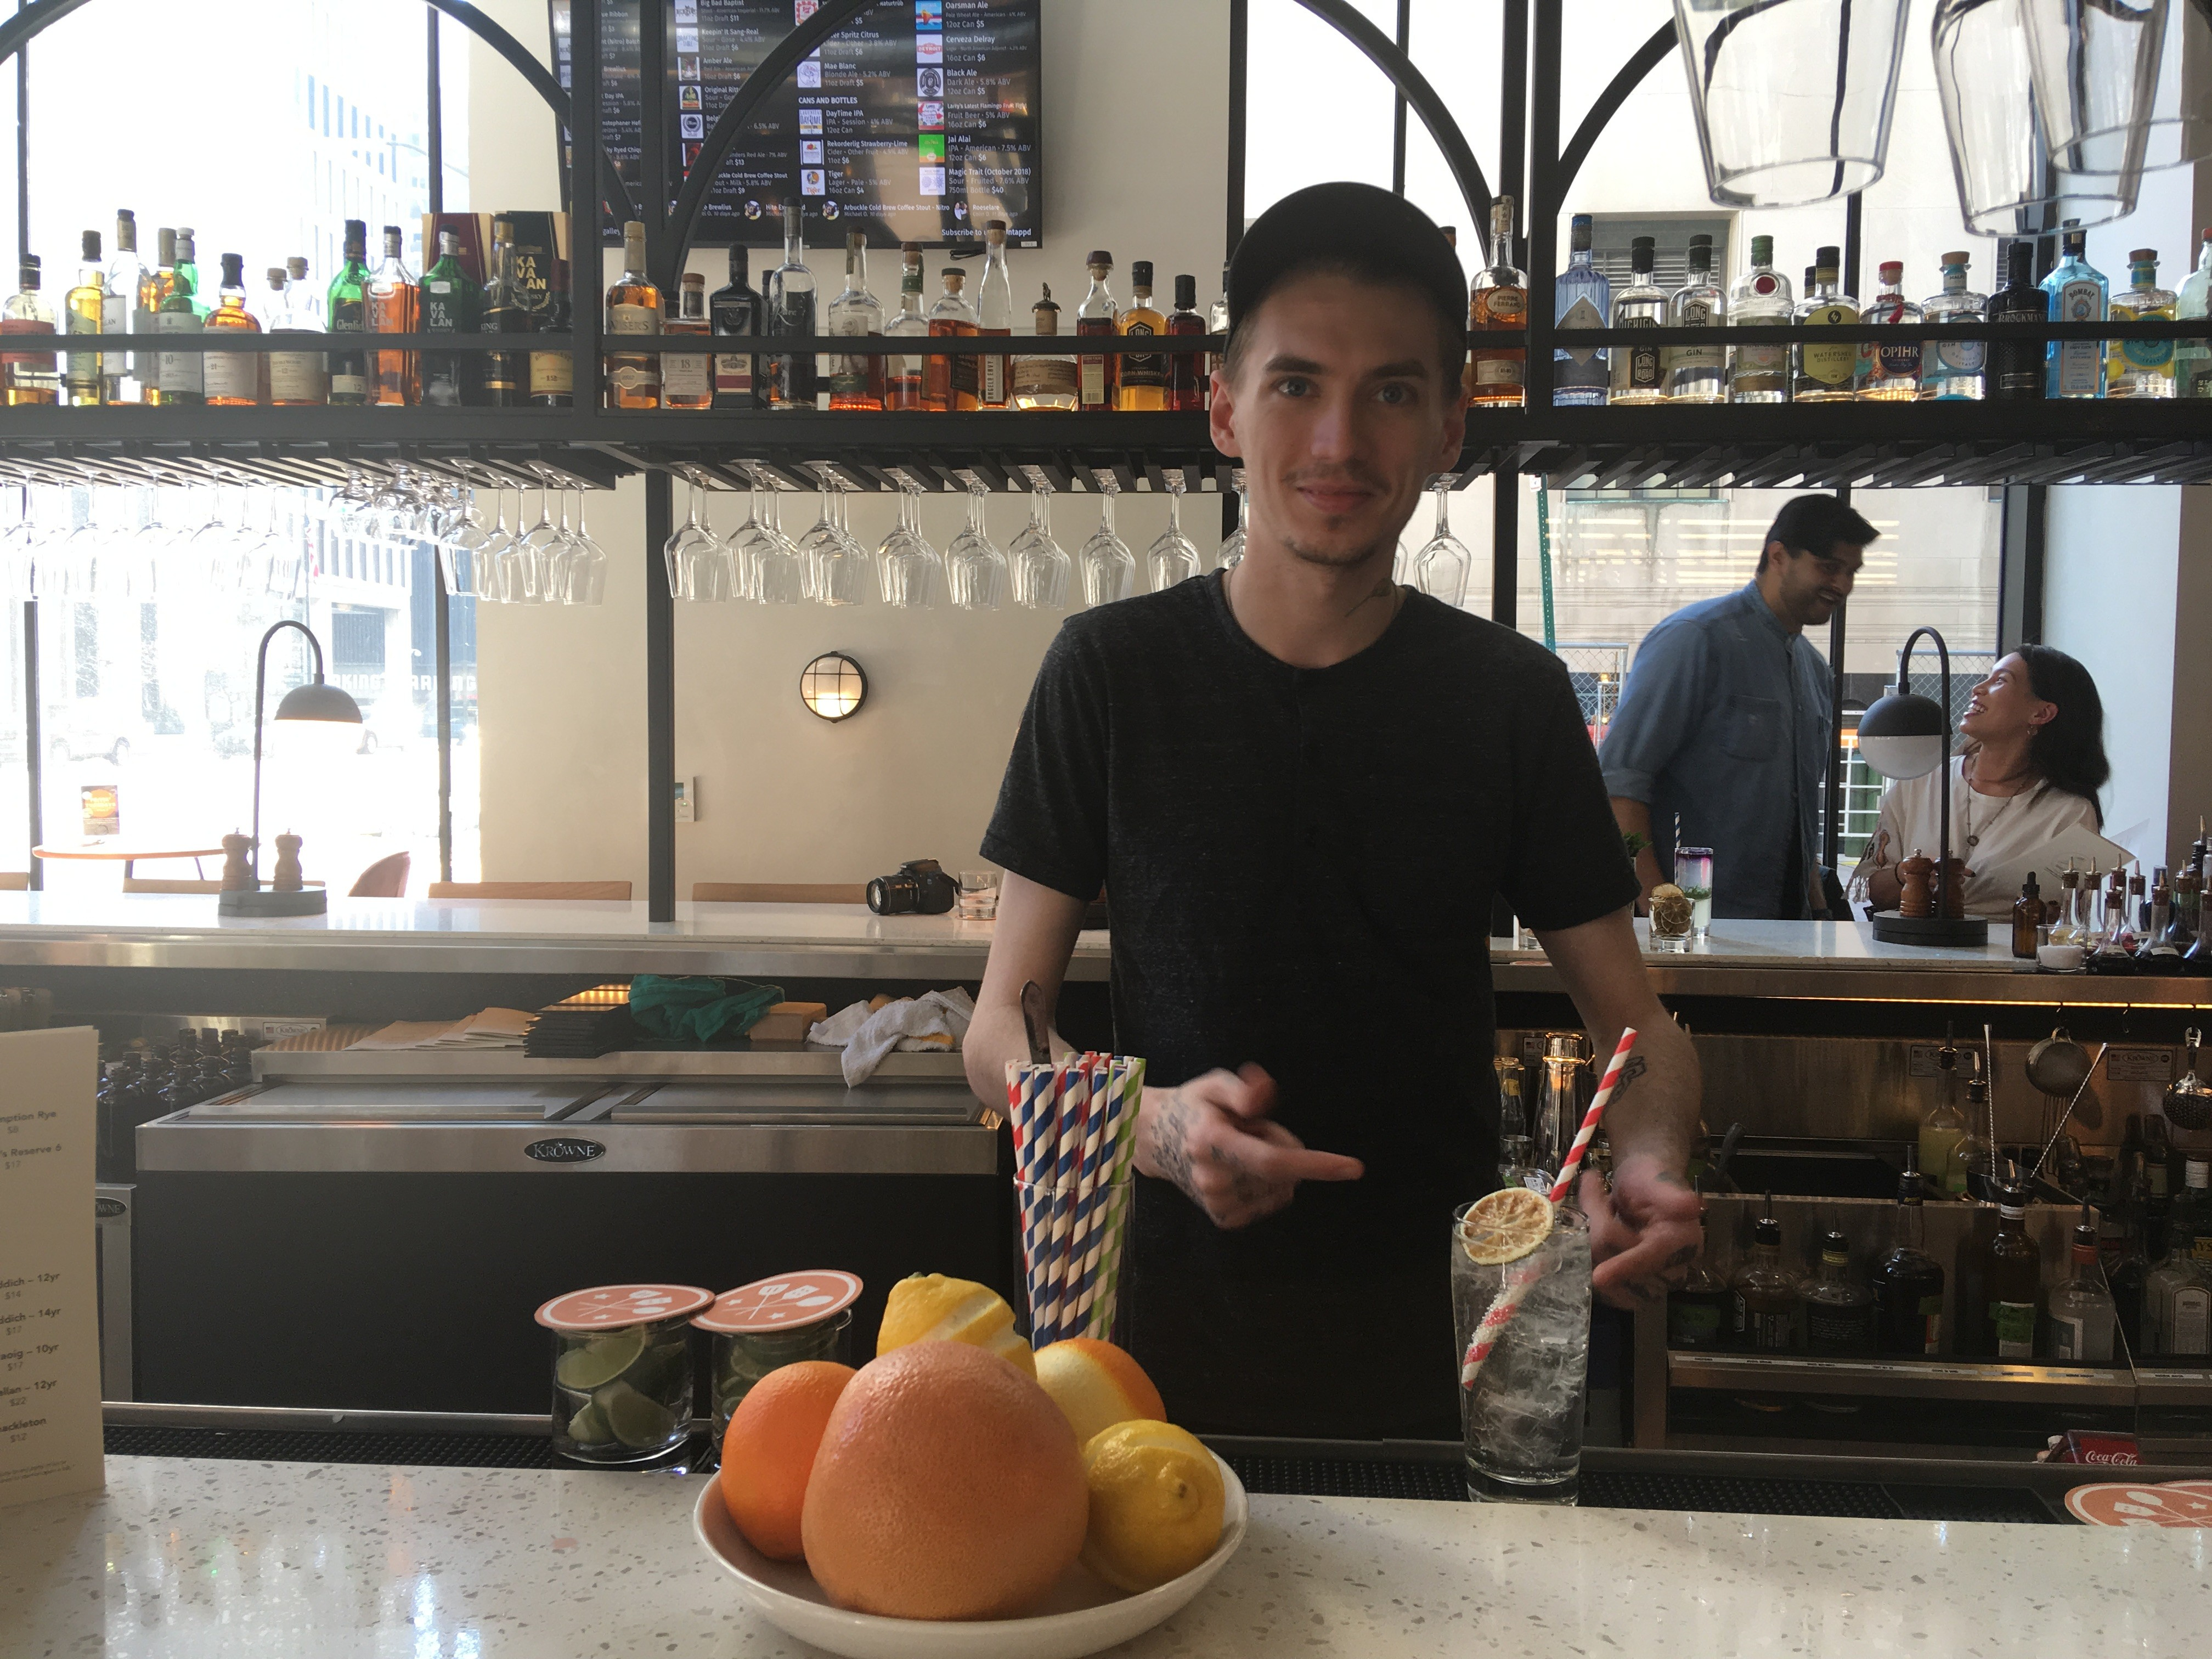 Magpie is now slinging creative cocktails at Detroit's Fort Street Galley